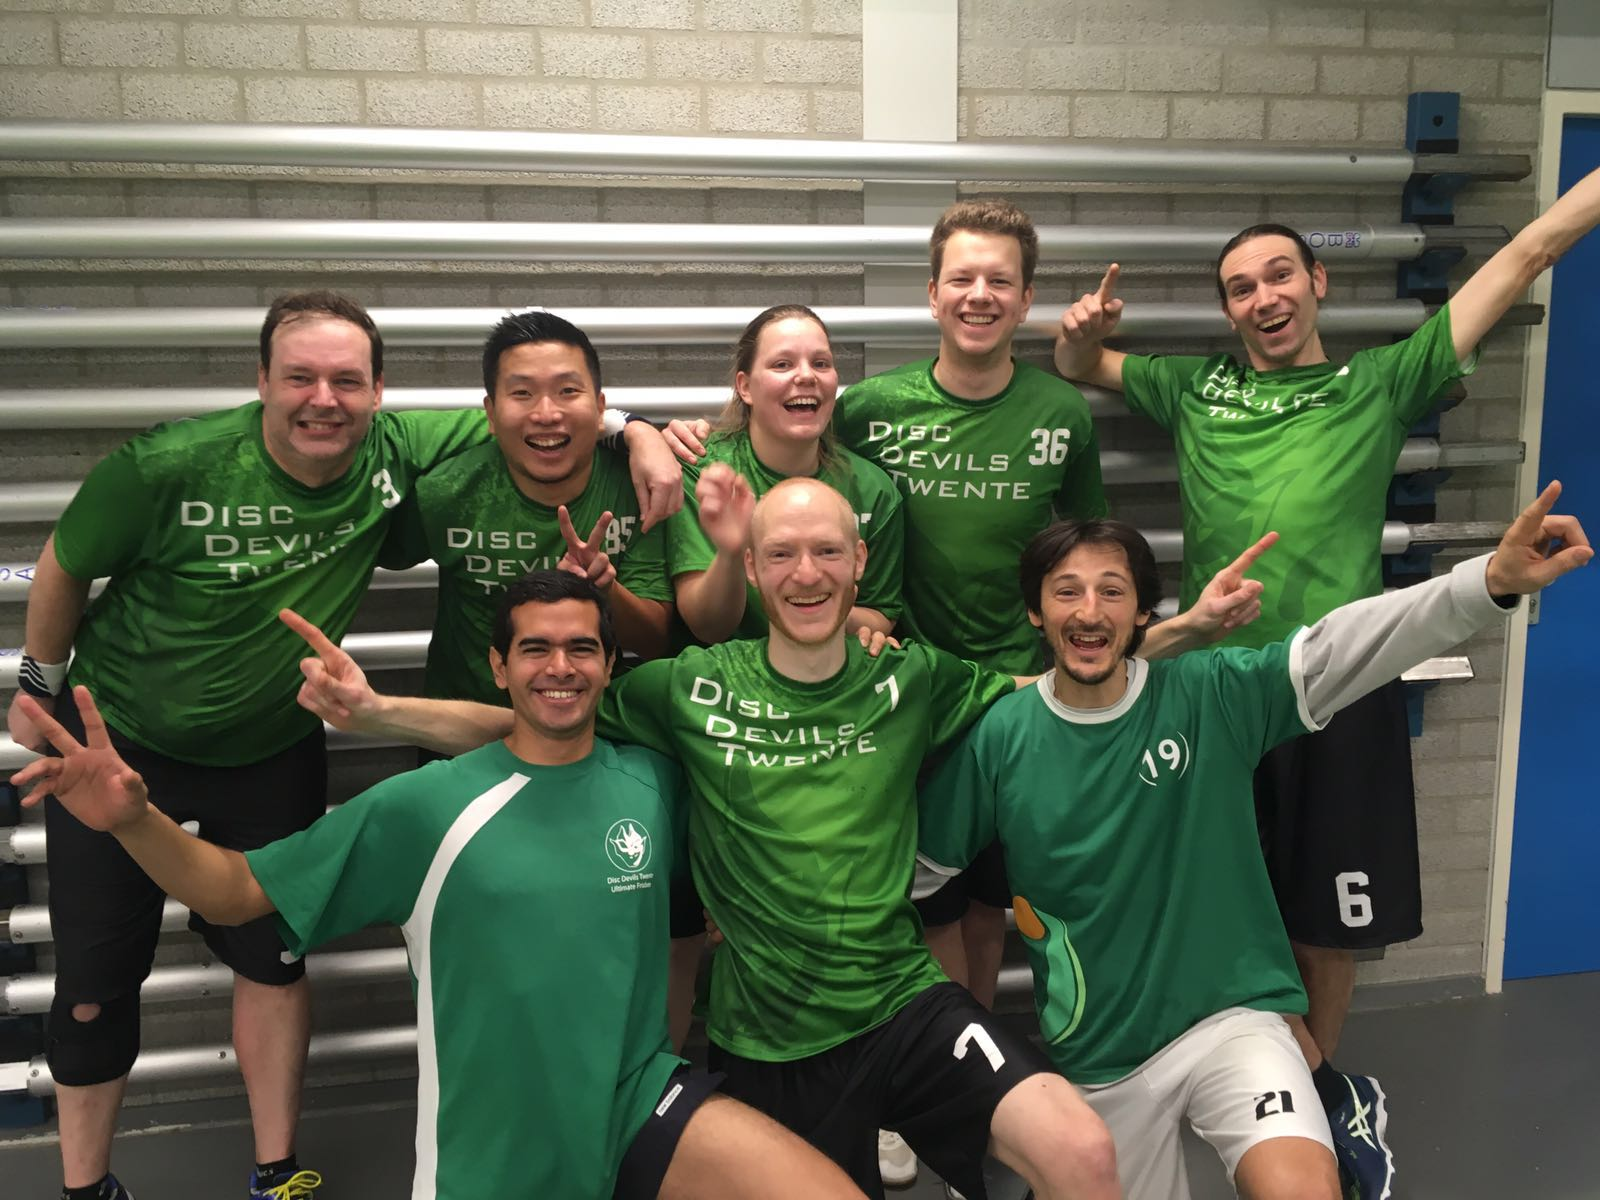 Nederlands Indoor Competitie 2016 2017 Ultimate Frisbee Disc Devils Twente